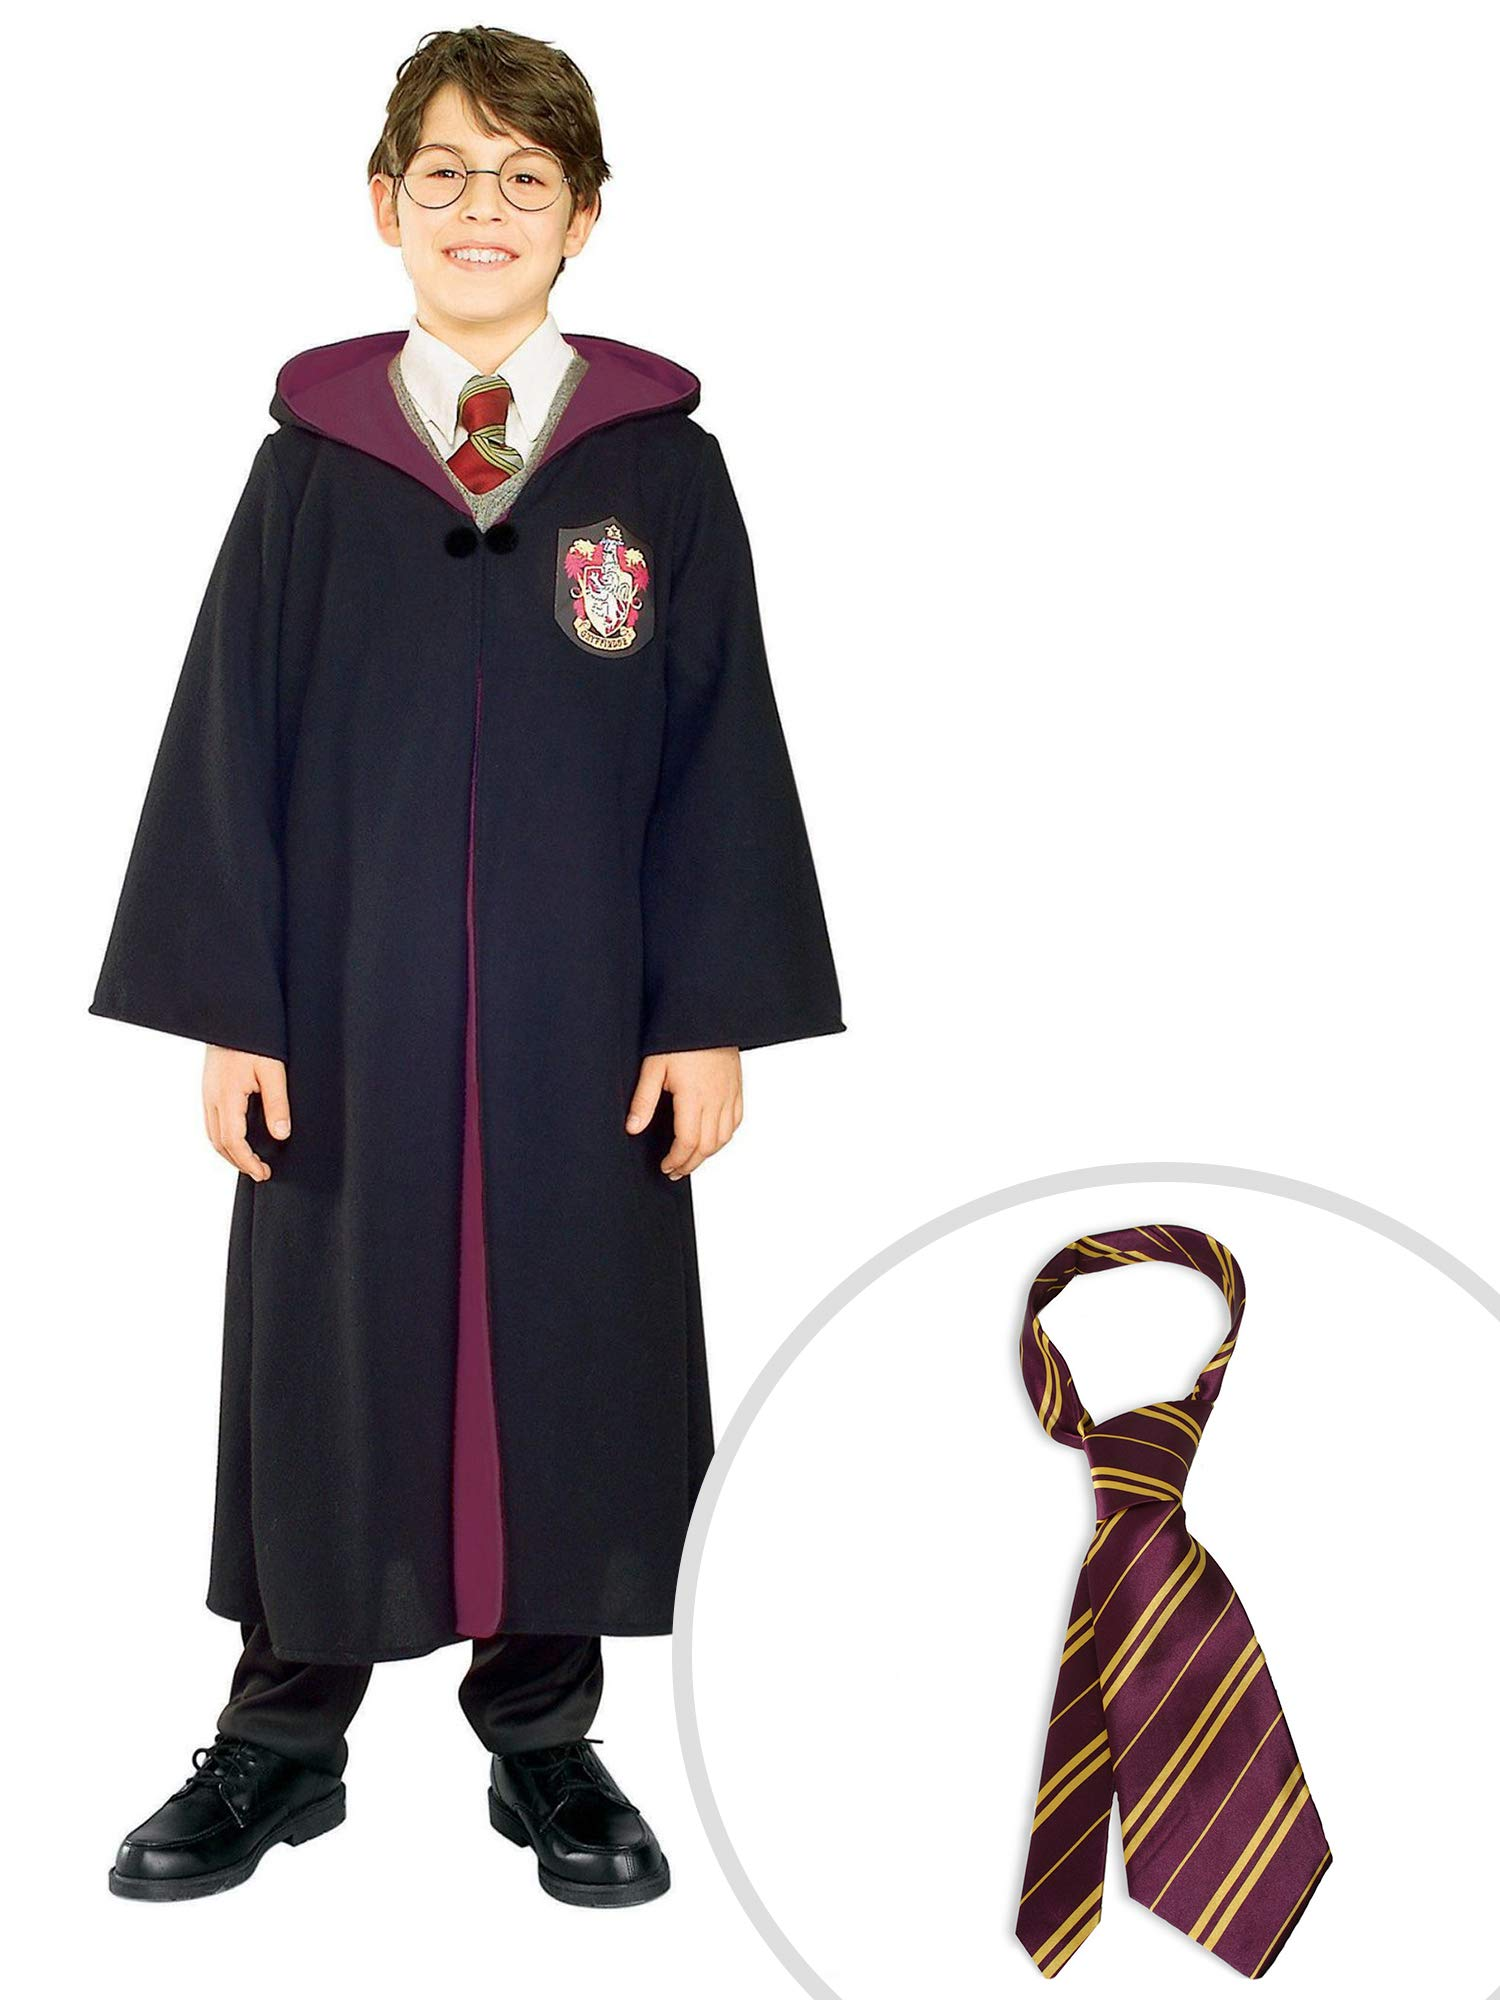 Harry Potter Robe Toddler Costume Kit Kids Toddler 2T-4T With Tie